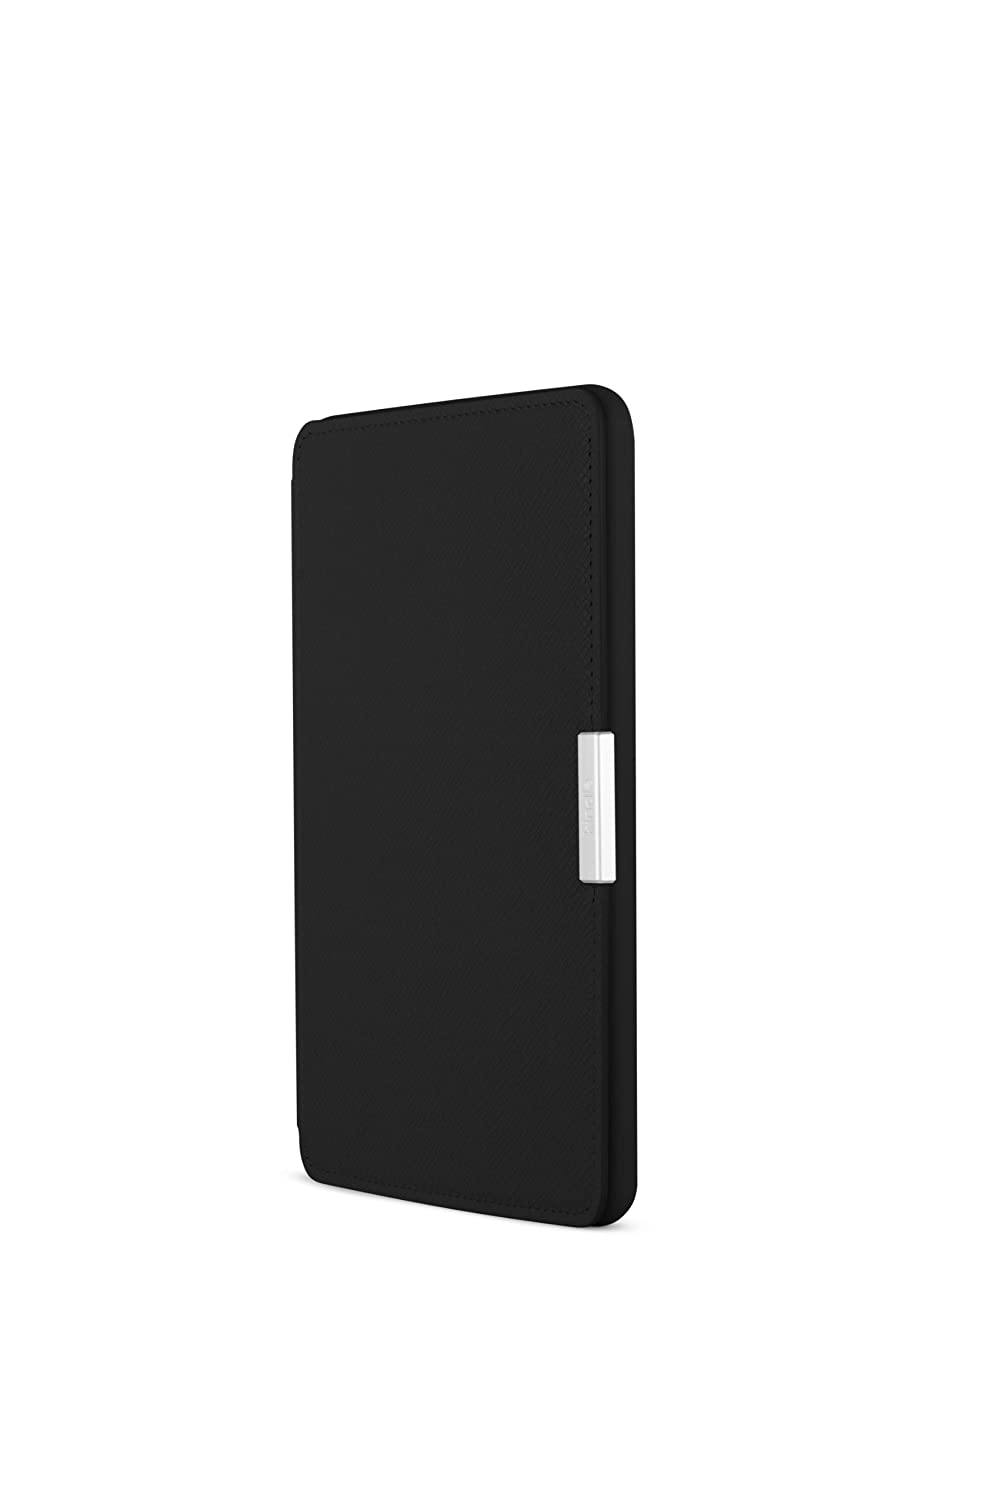 fits all Paperwhite generations prior to 2018 Will not fit All-new Paperwhite 10th generation Kindle Paperwhite Leather Case Persimmon